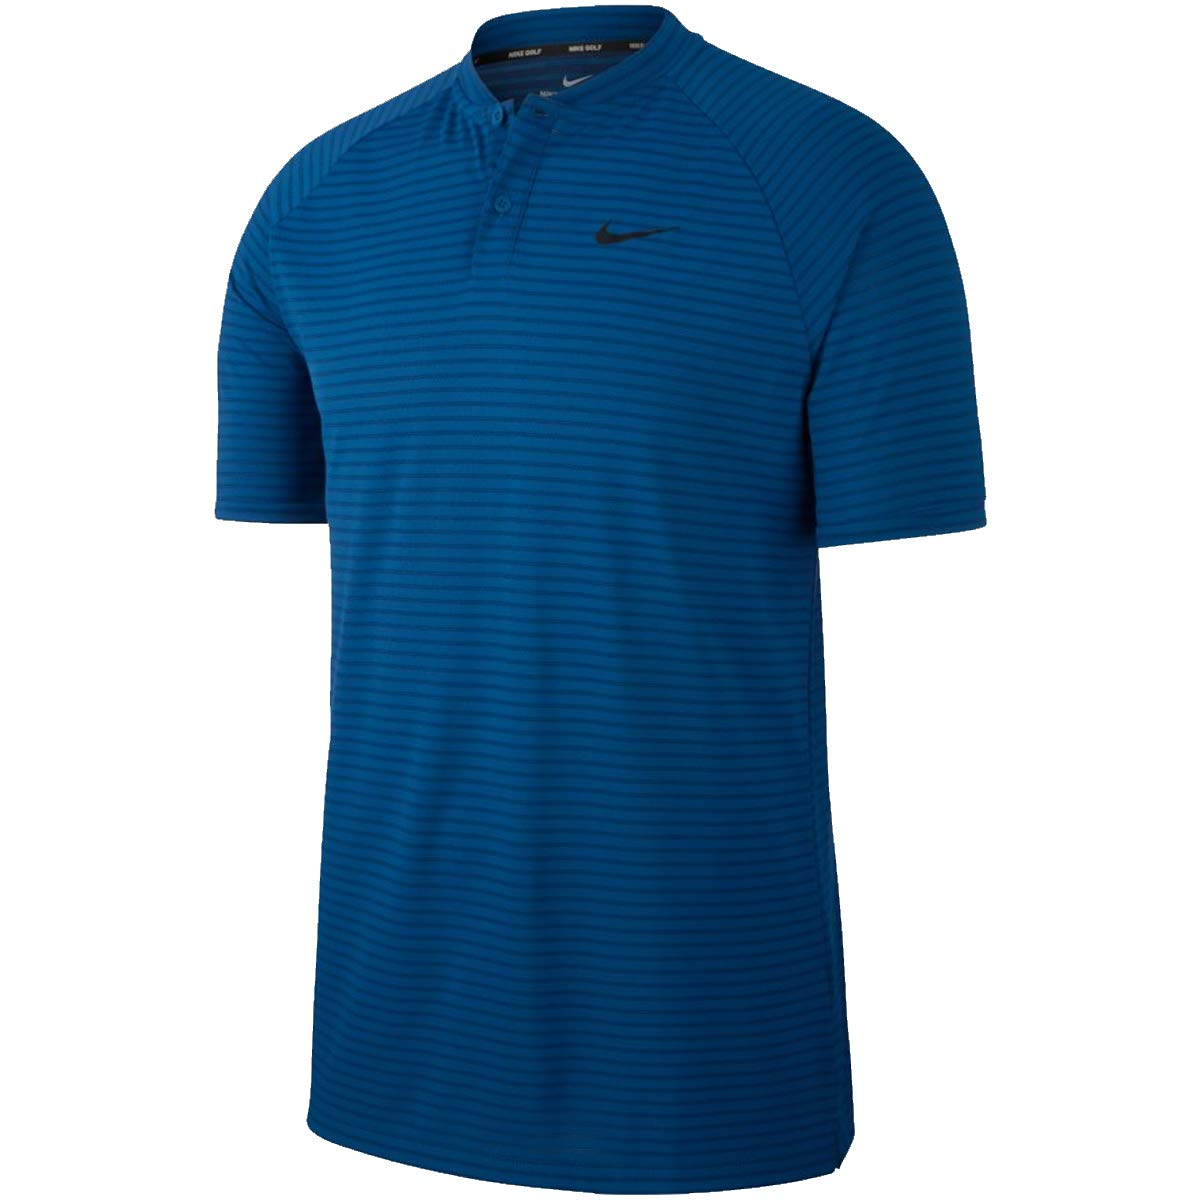 339d72d1 Amazon.com: Nike Golf TW Tiger Woods Zonal Cooling Polo 932175: Clothing